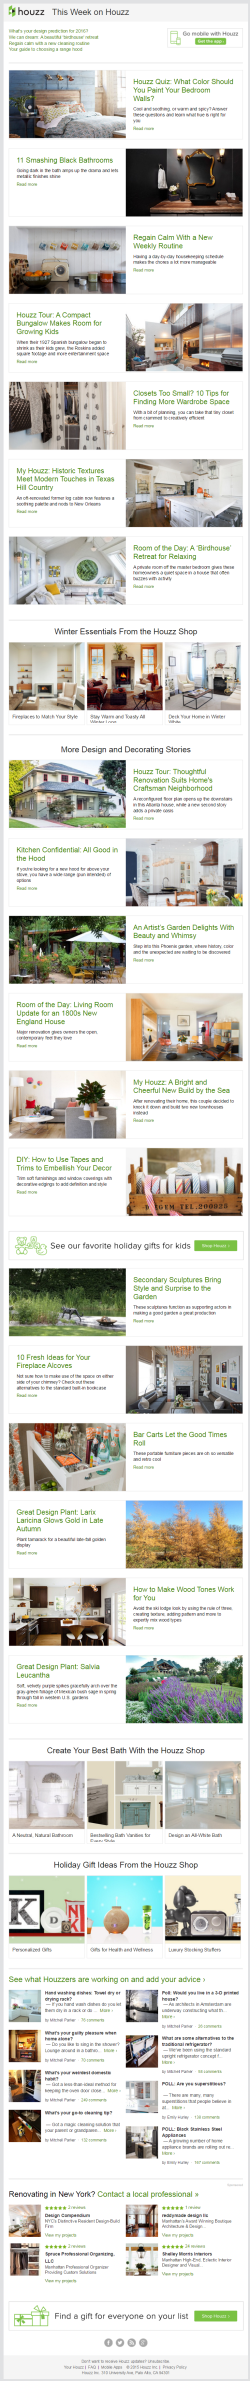 Houzz newsletter